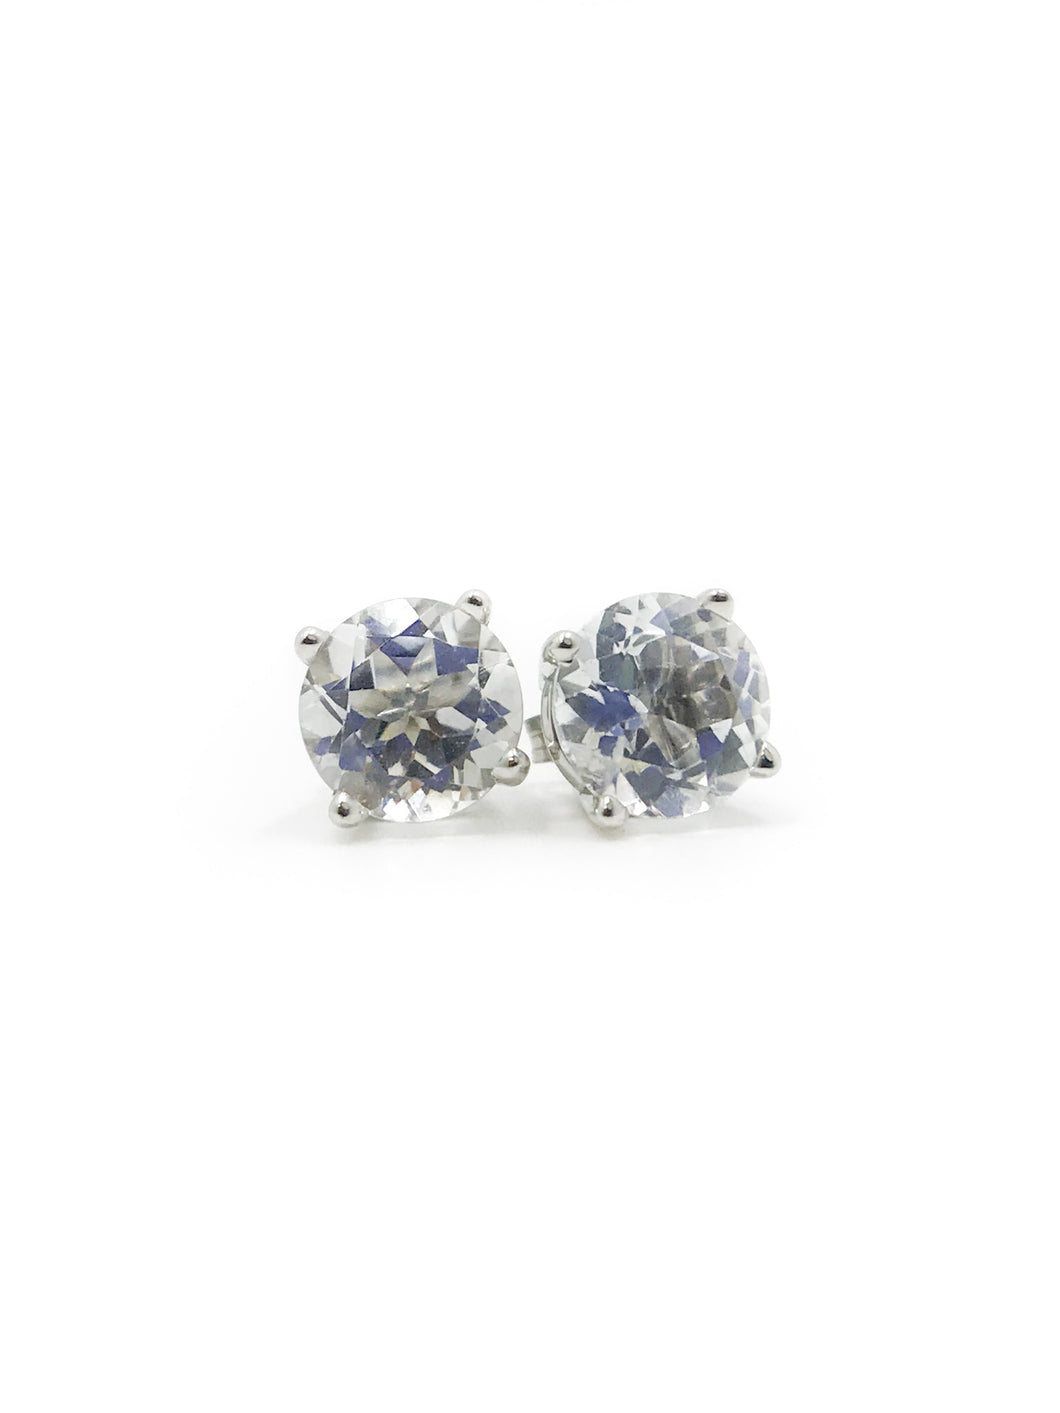 Round White Topaz and 10K White Gold Stud Friction Post Earrings 2.50tcw.